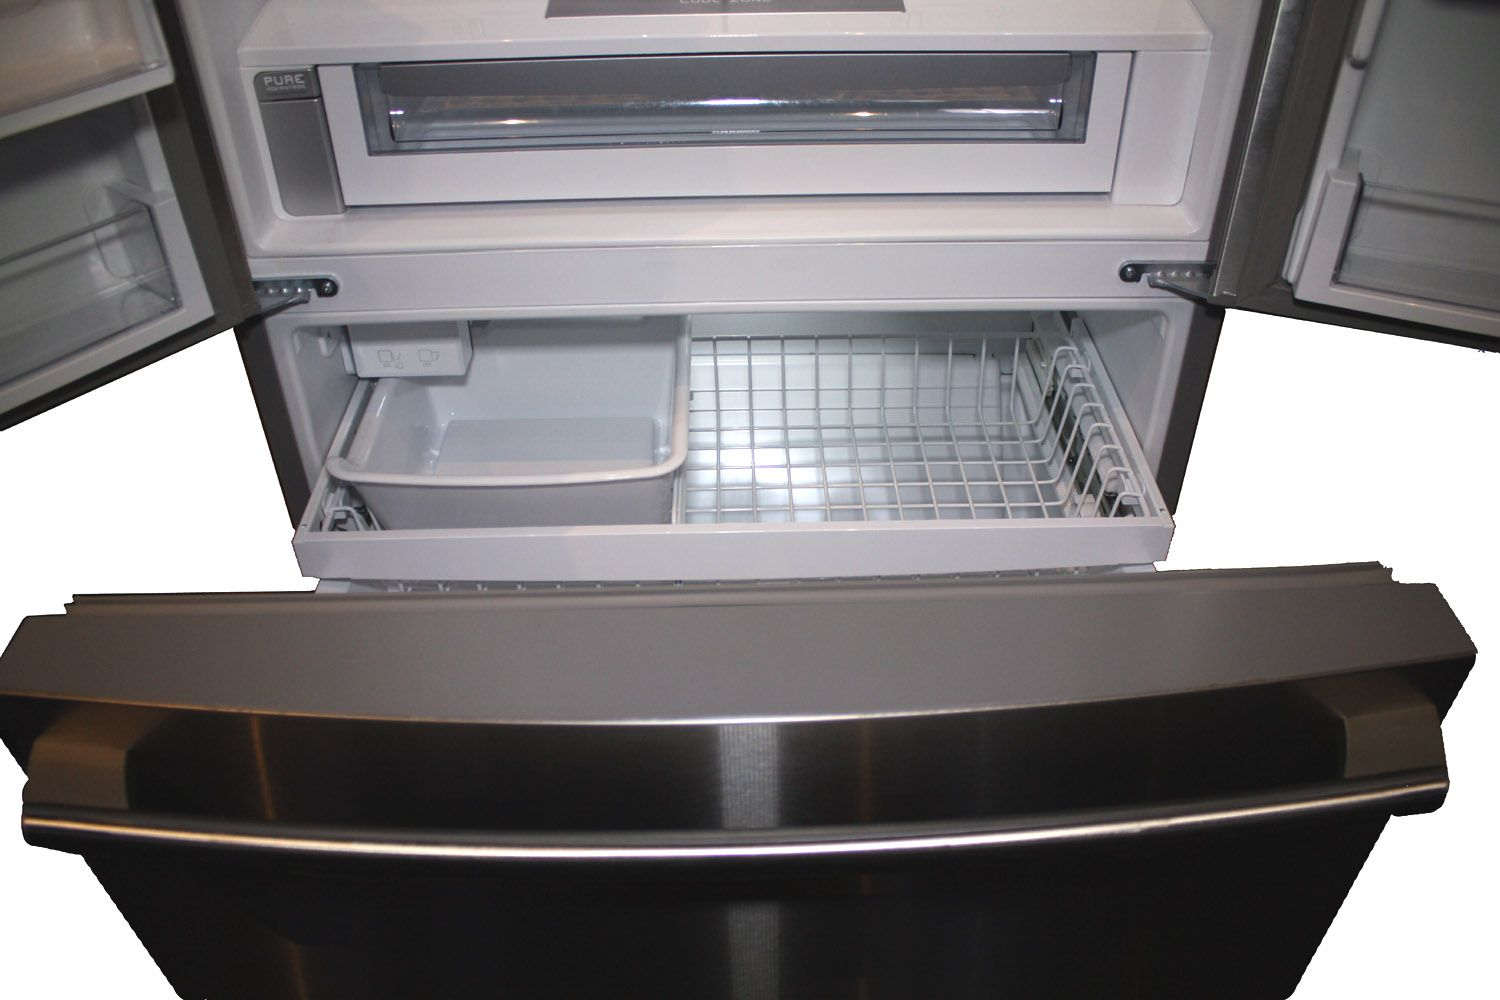 Electrolux Counter French Door Refrigerator Ei23bc35ks